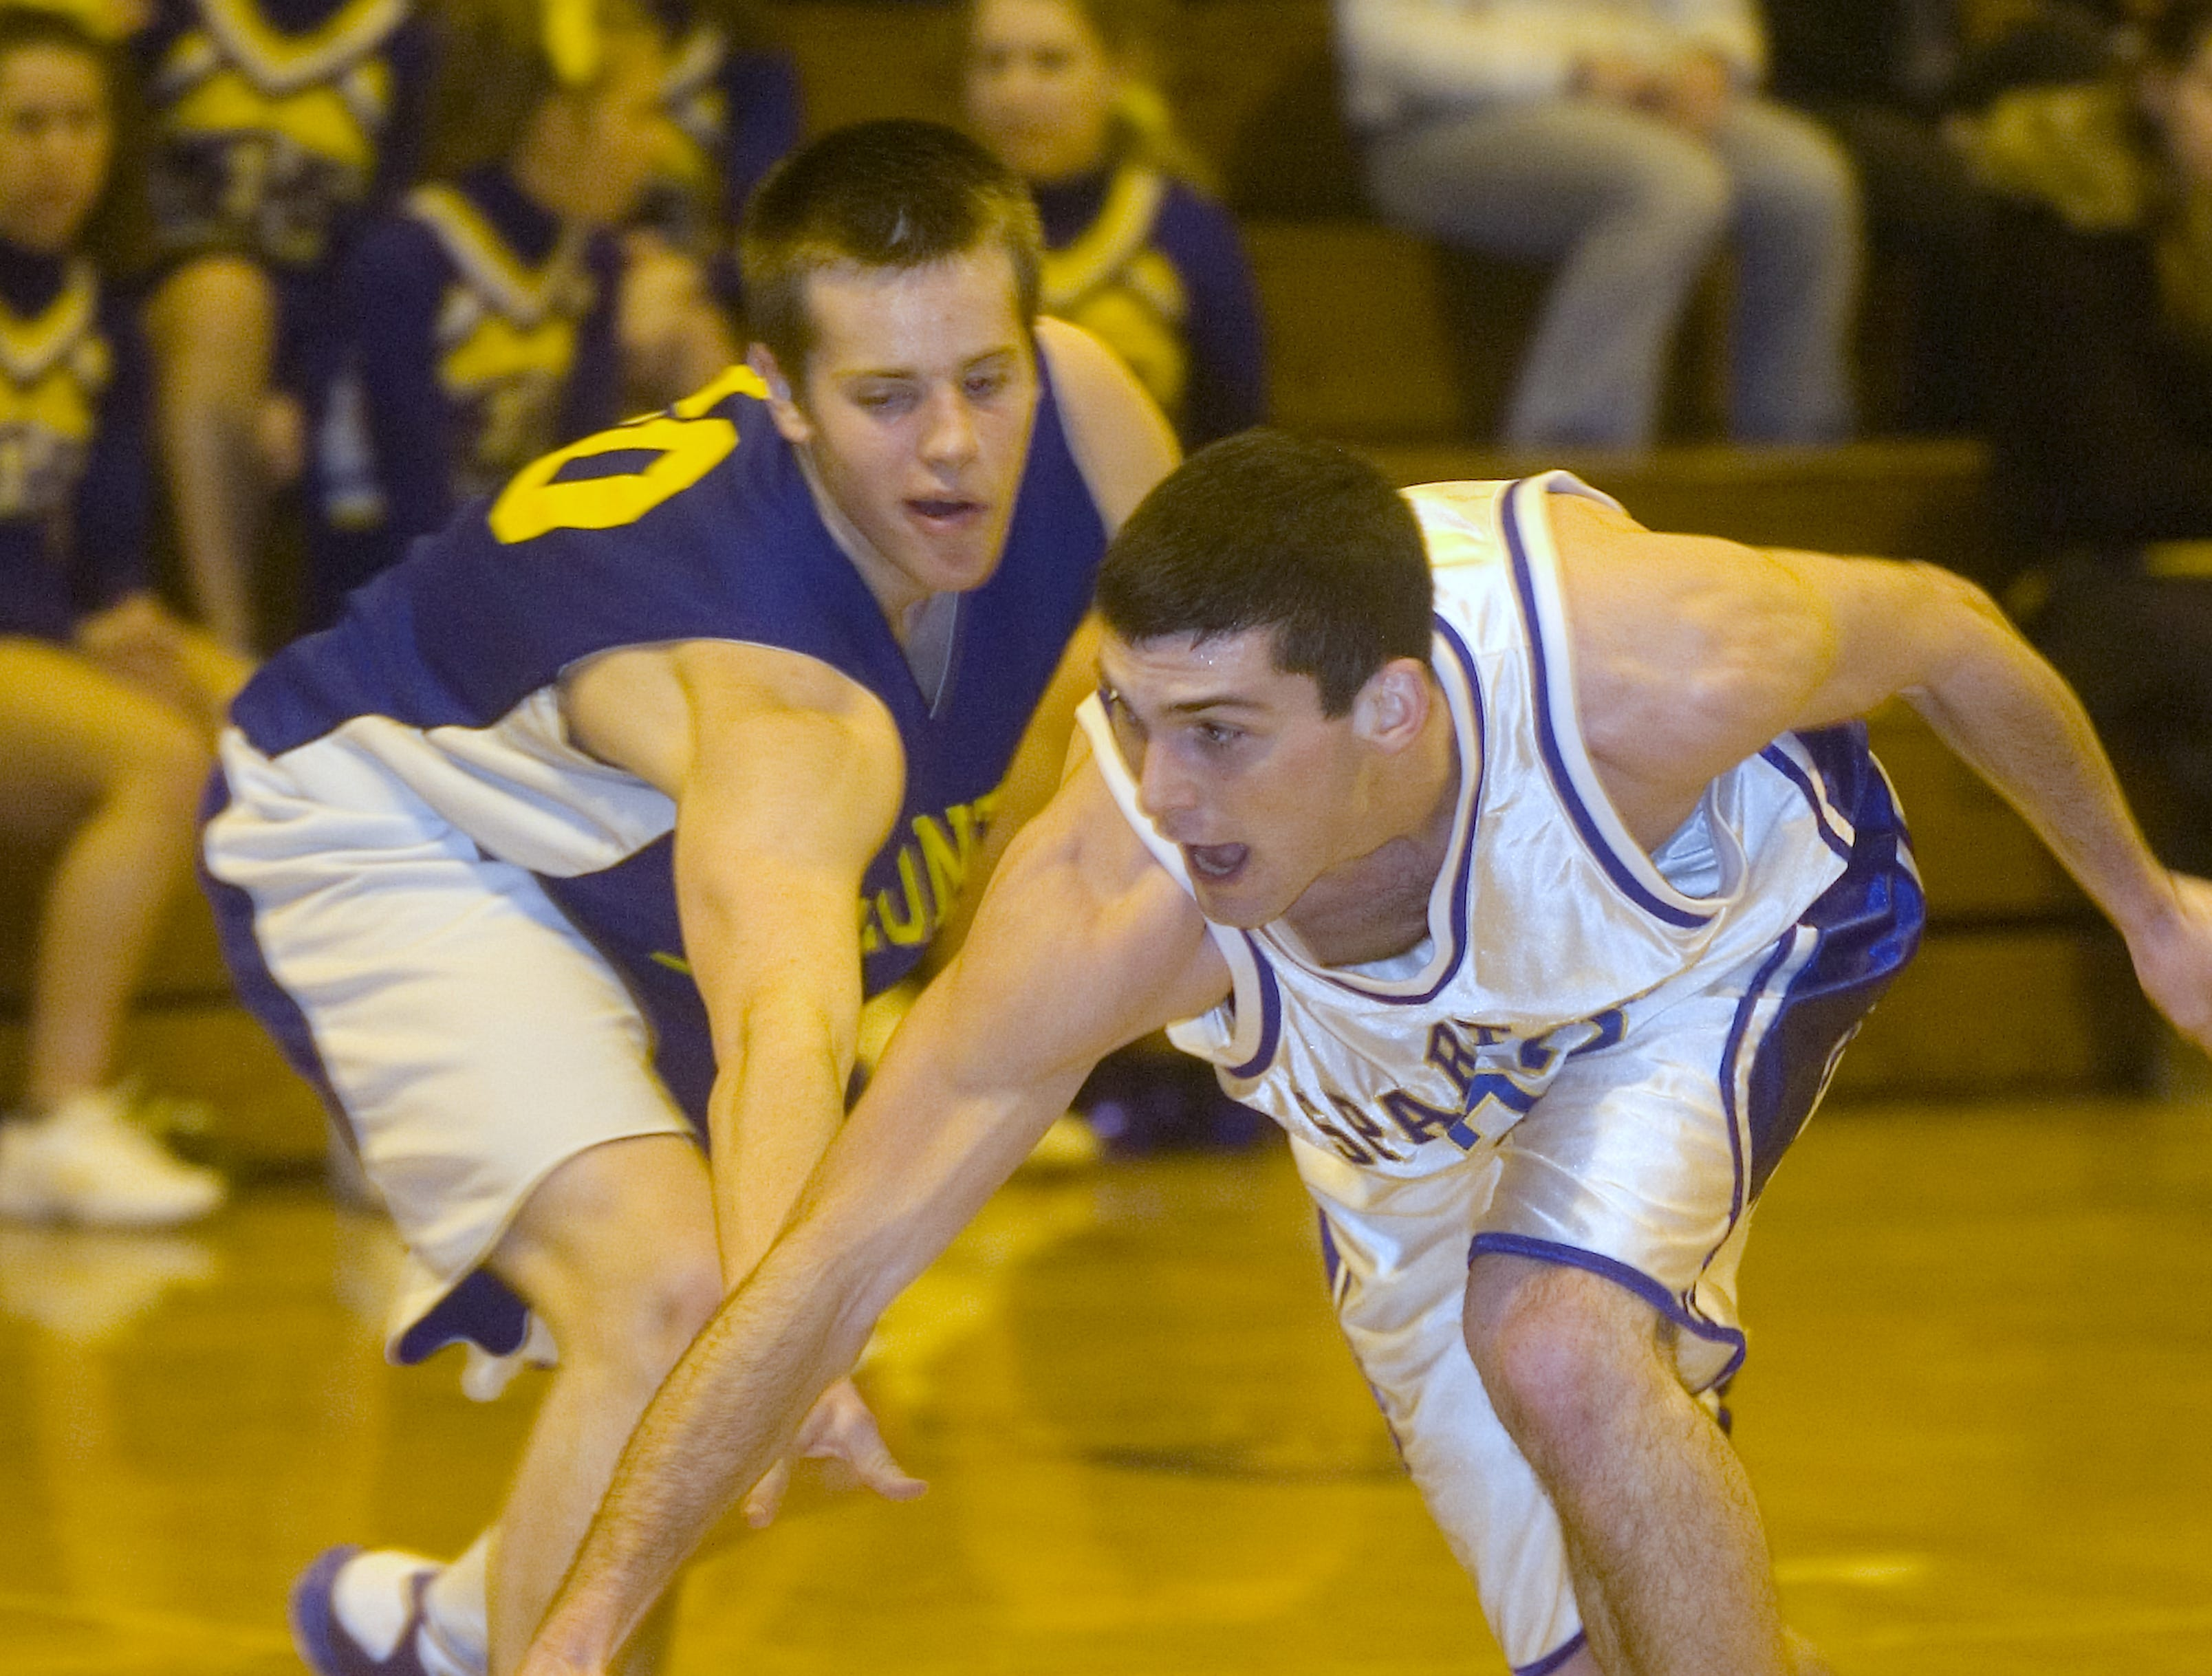 2009: Maine-Endwell's Joe Powell, right, and Oneonta's Ben Ehrets go for the loose ball in the second quarter of Wednesday's game at M-E.